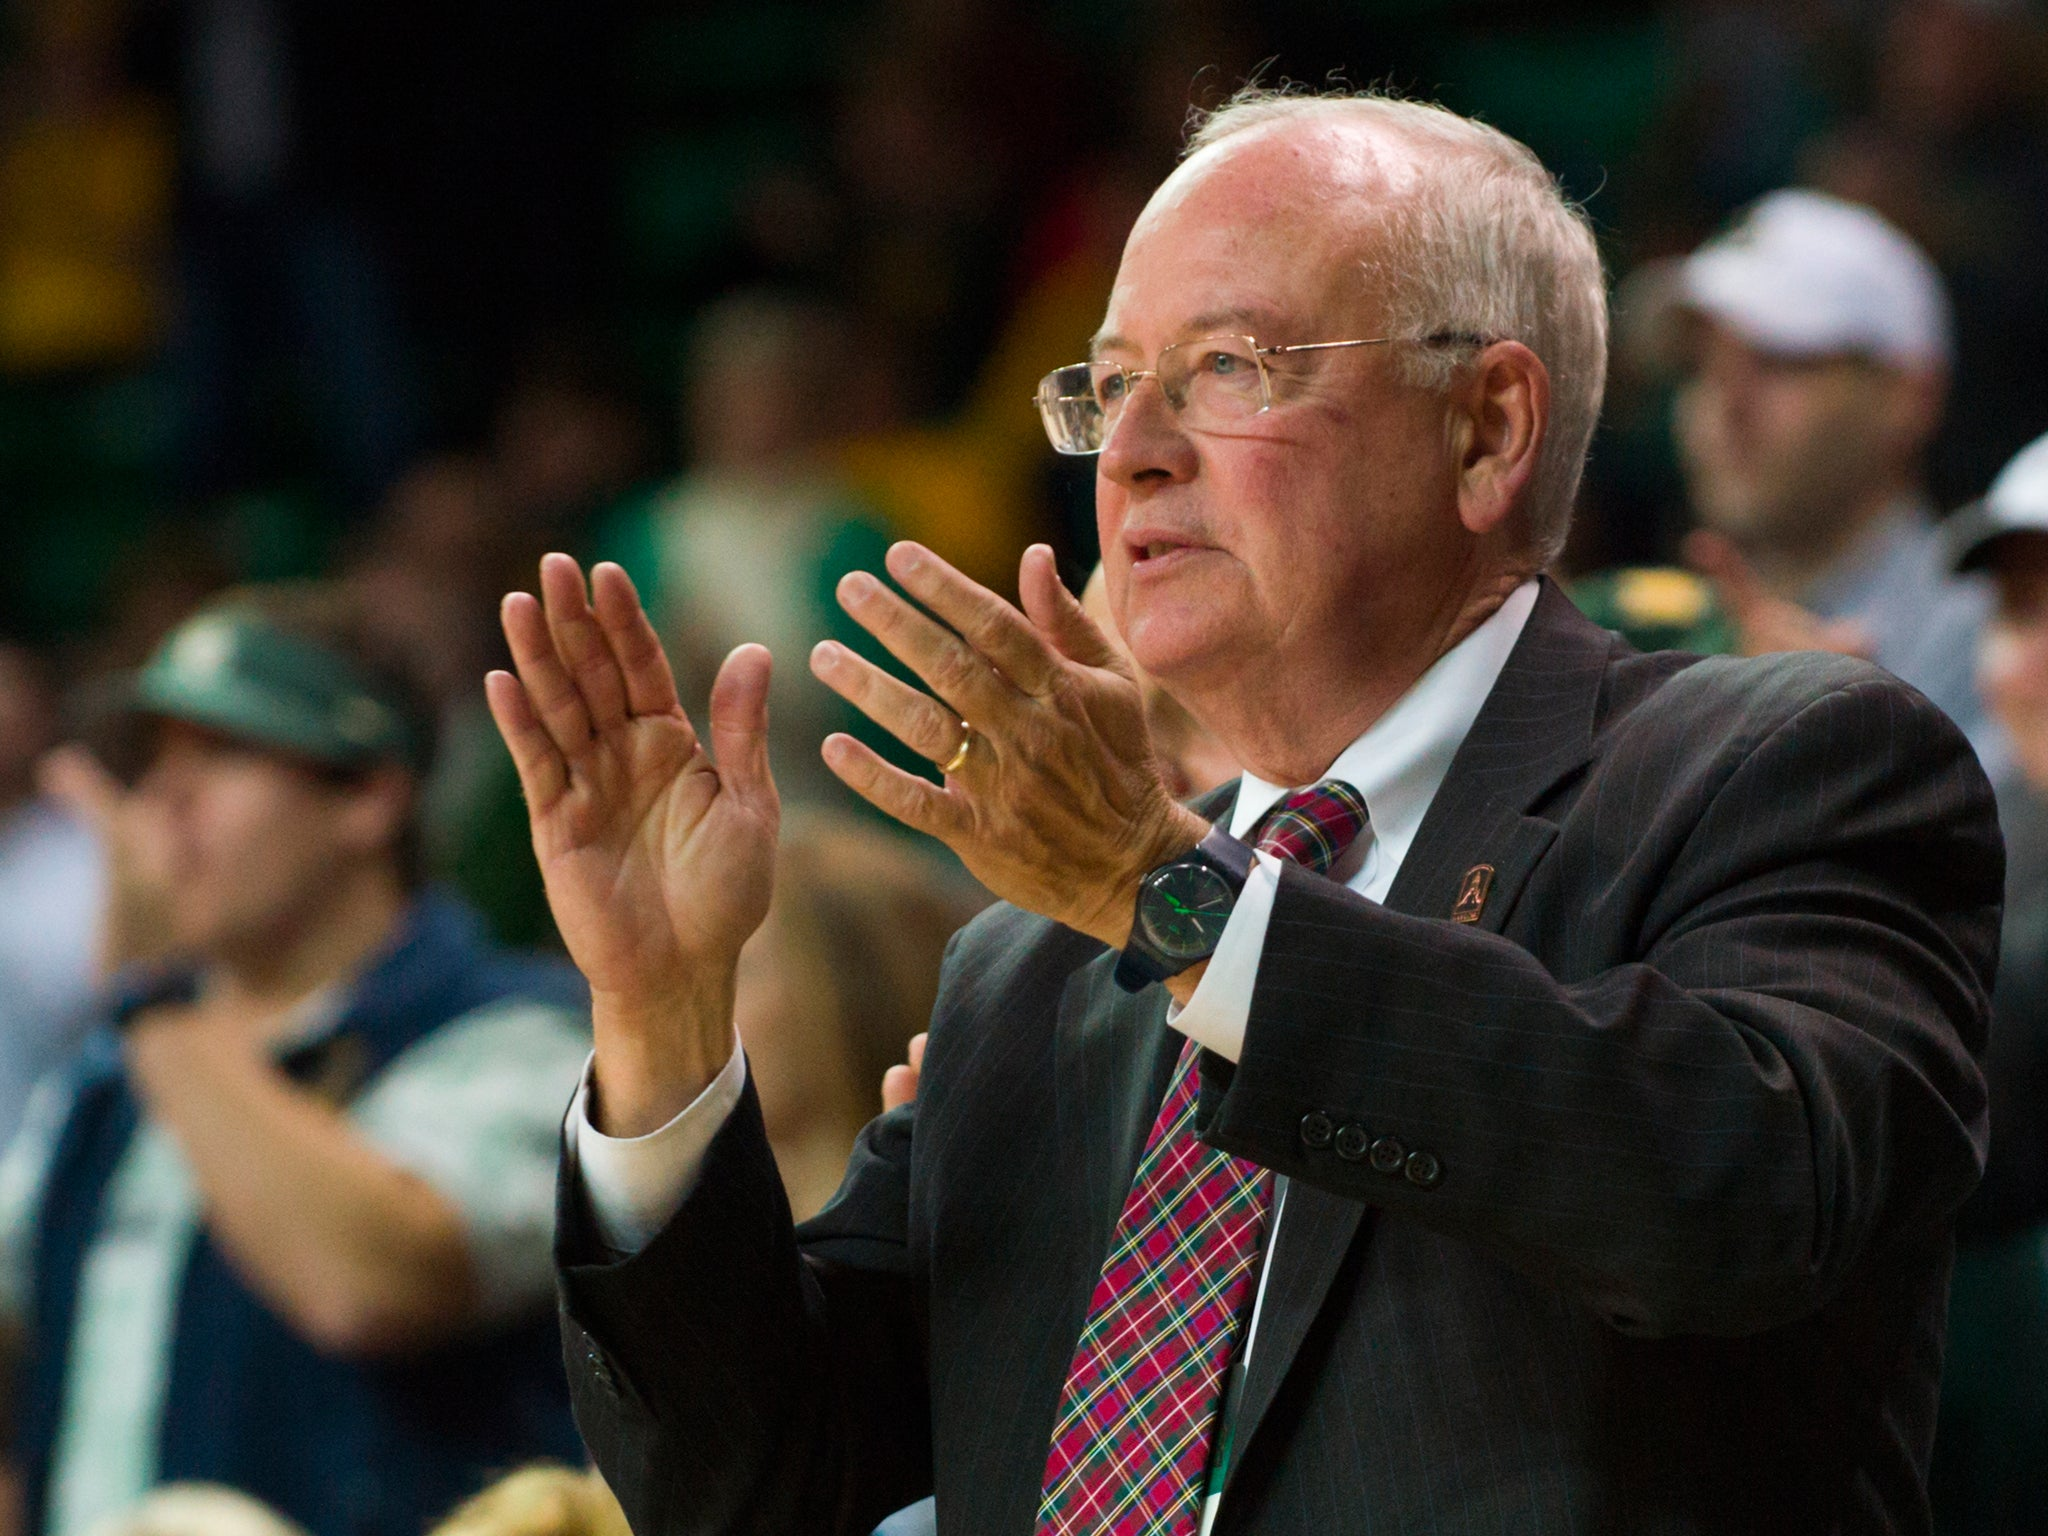 Ken Starr: Texas university reportedly fires former Clinton investigator amid campus sexual assault scandal